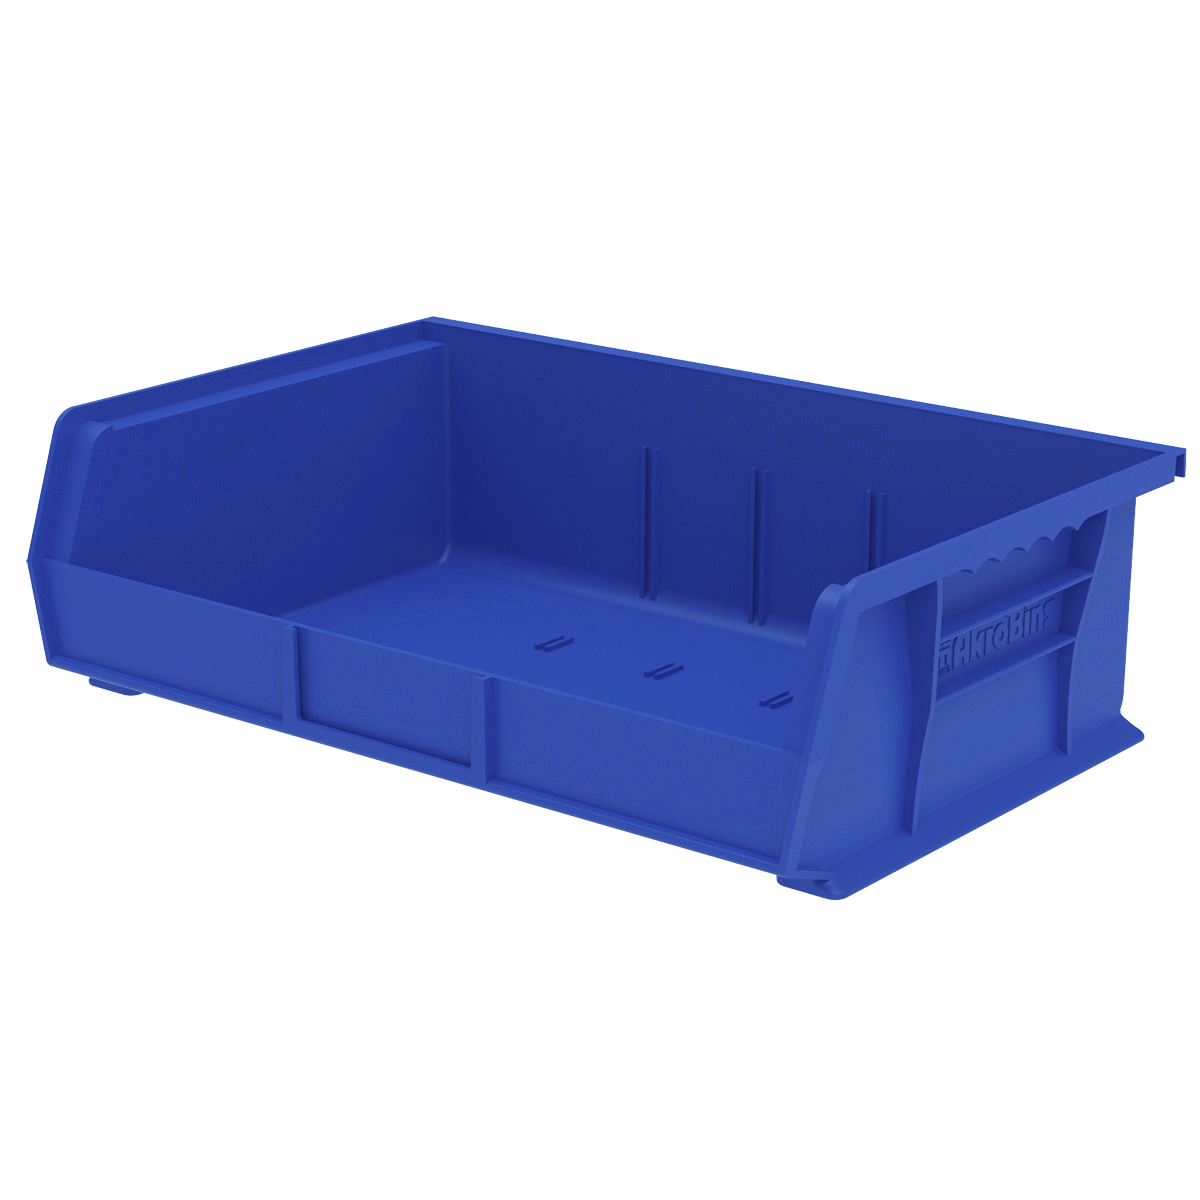 AkroBin 10-7/8 x 16-1/2 x 5, Blue (30255BLUE).  This item sold in carton quantities of 6.